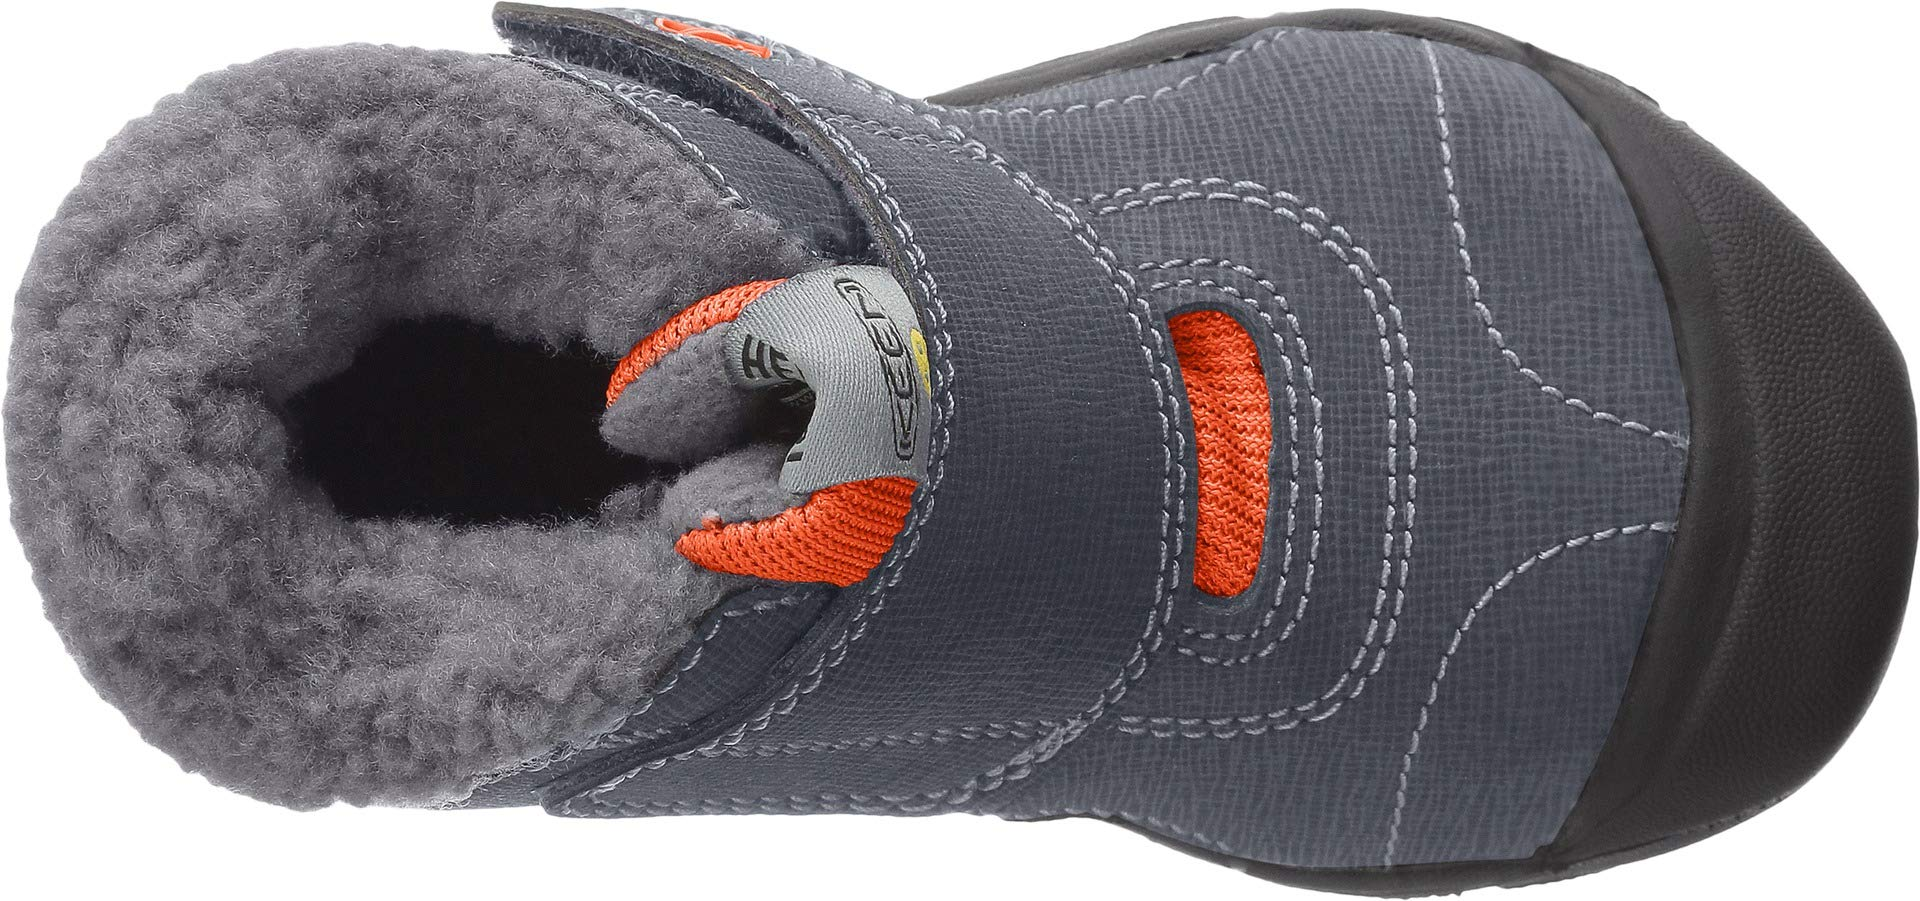 KEEN Kootenay Waterproof Winter Boot (Toddler), Magnet/Koi, 6 M US Toddler by KEEN (Image #2)